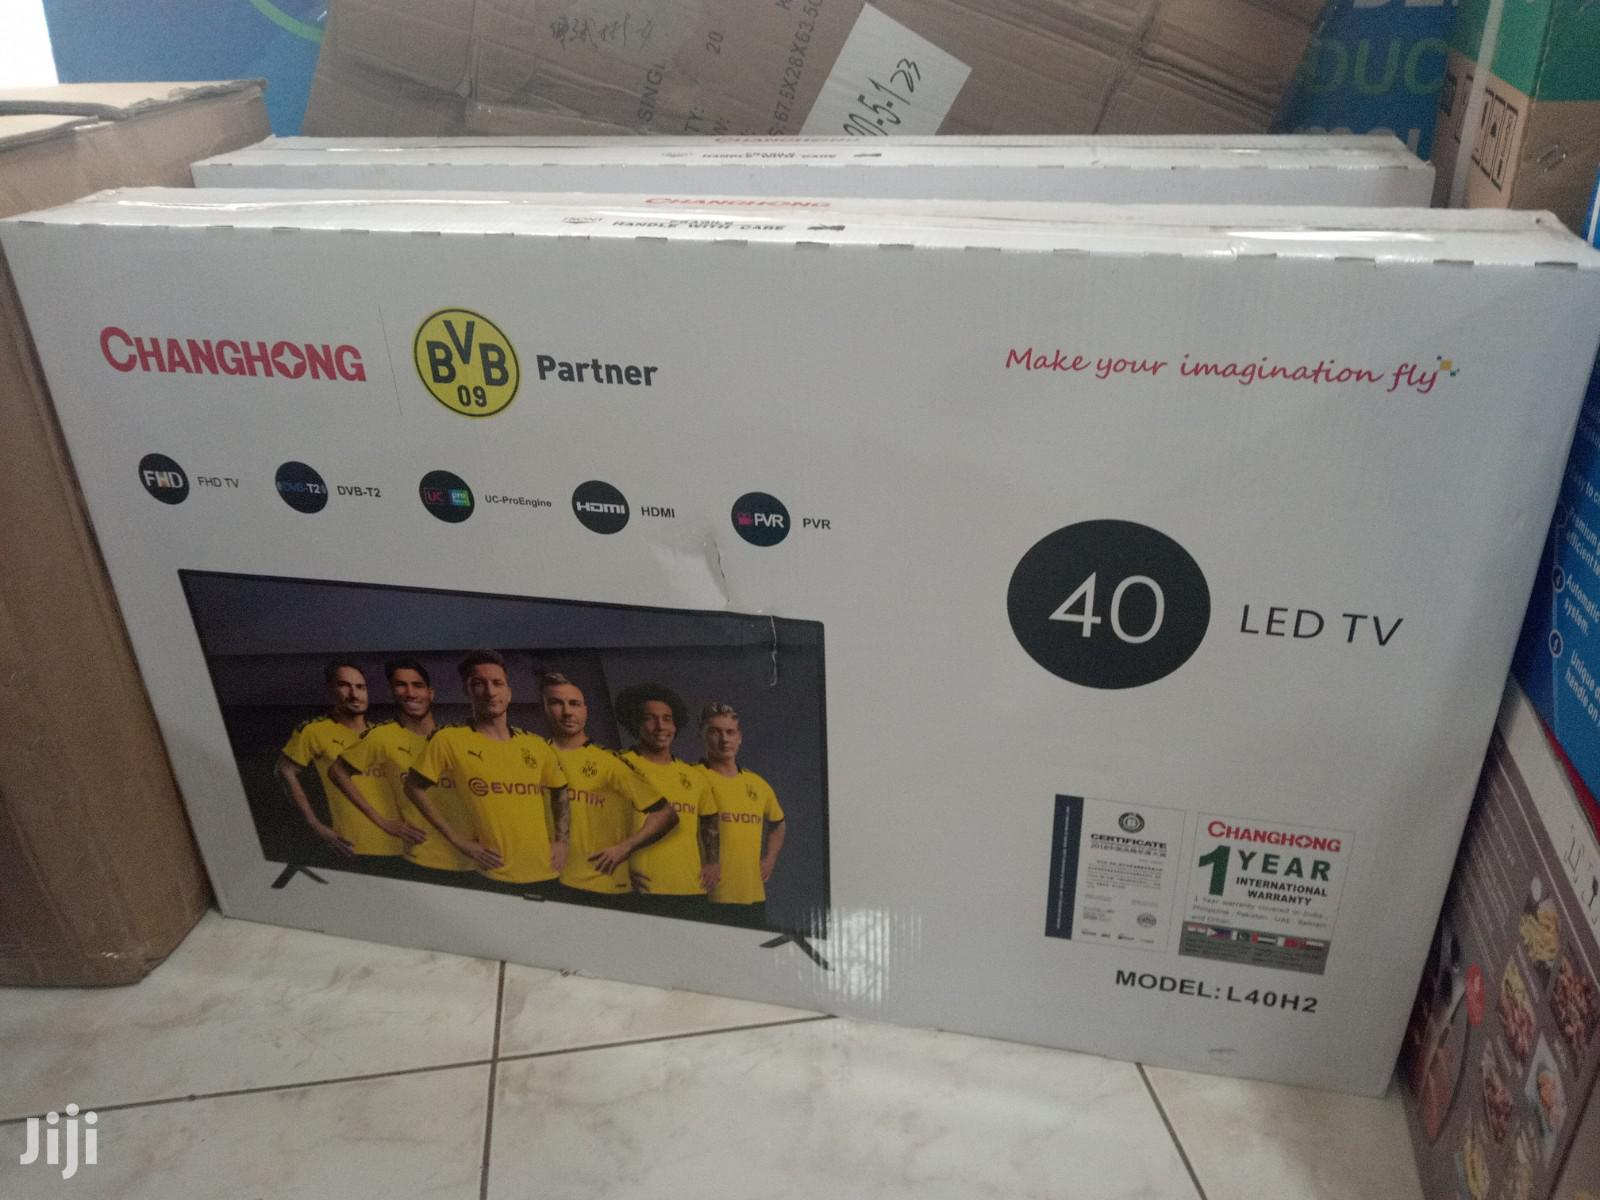 Archive: Changhong 40 Inch Digital LED TV